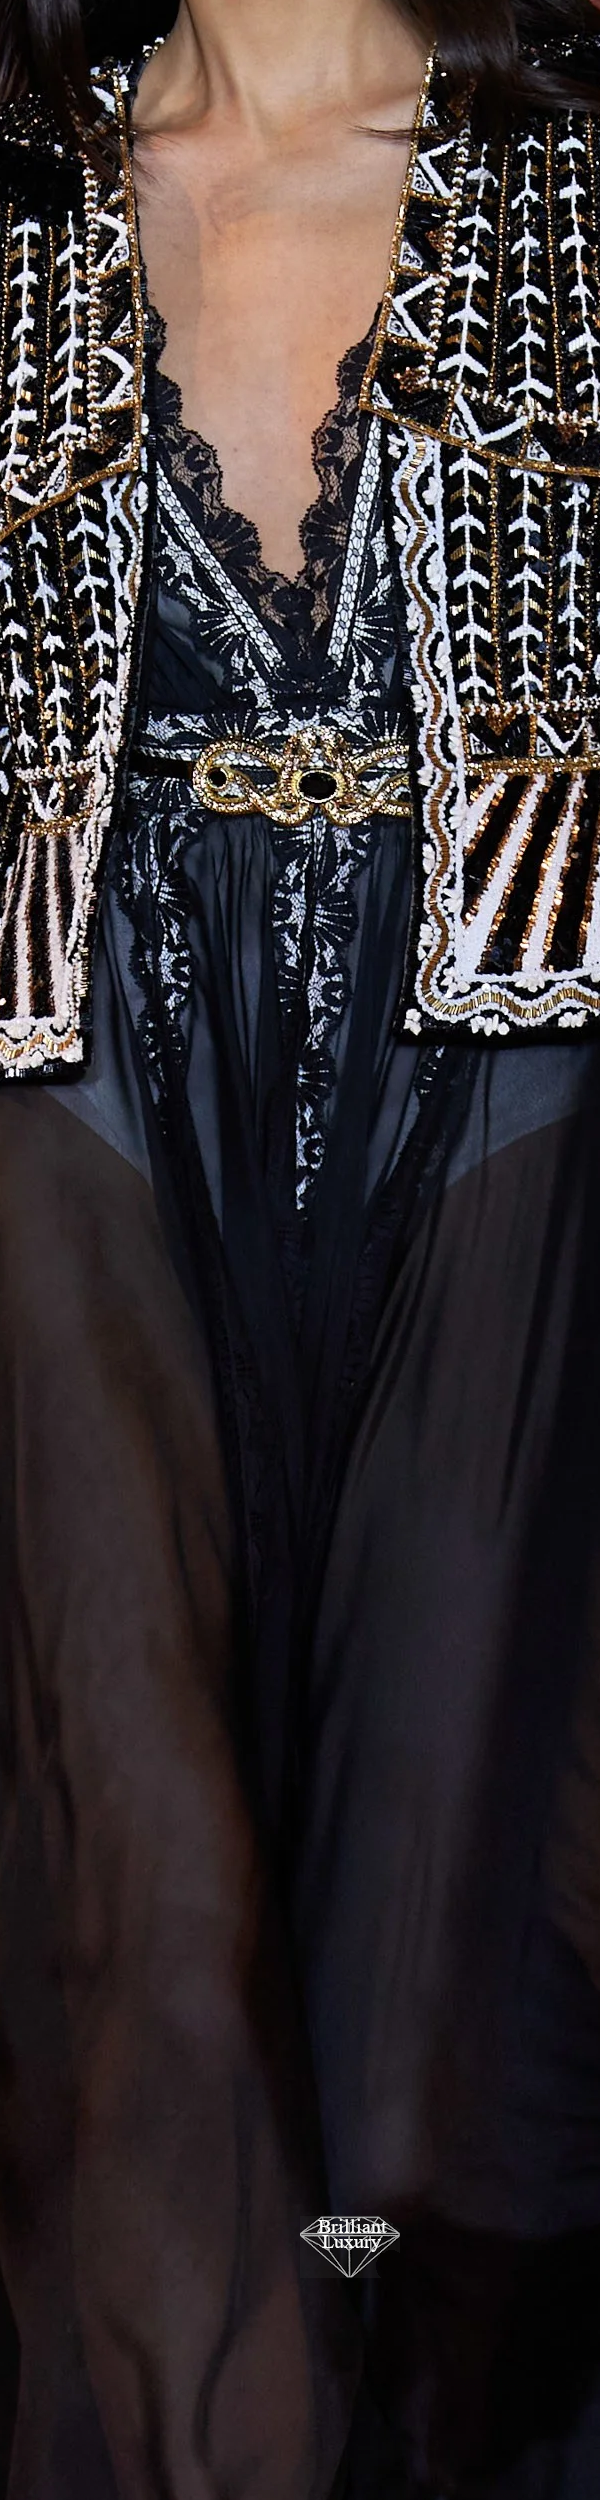 Zuhair Murad Spring 2020 Couture Embroidered Black and White Gown #fashion